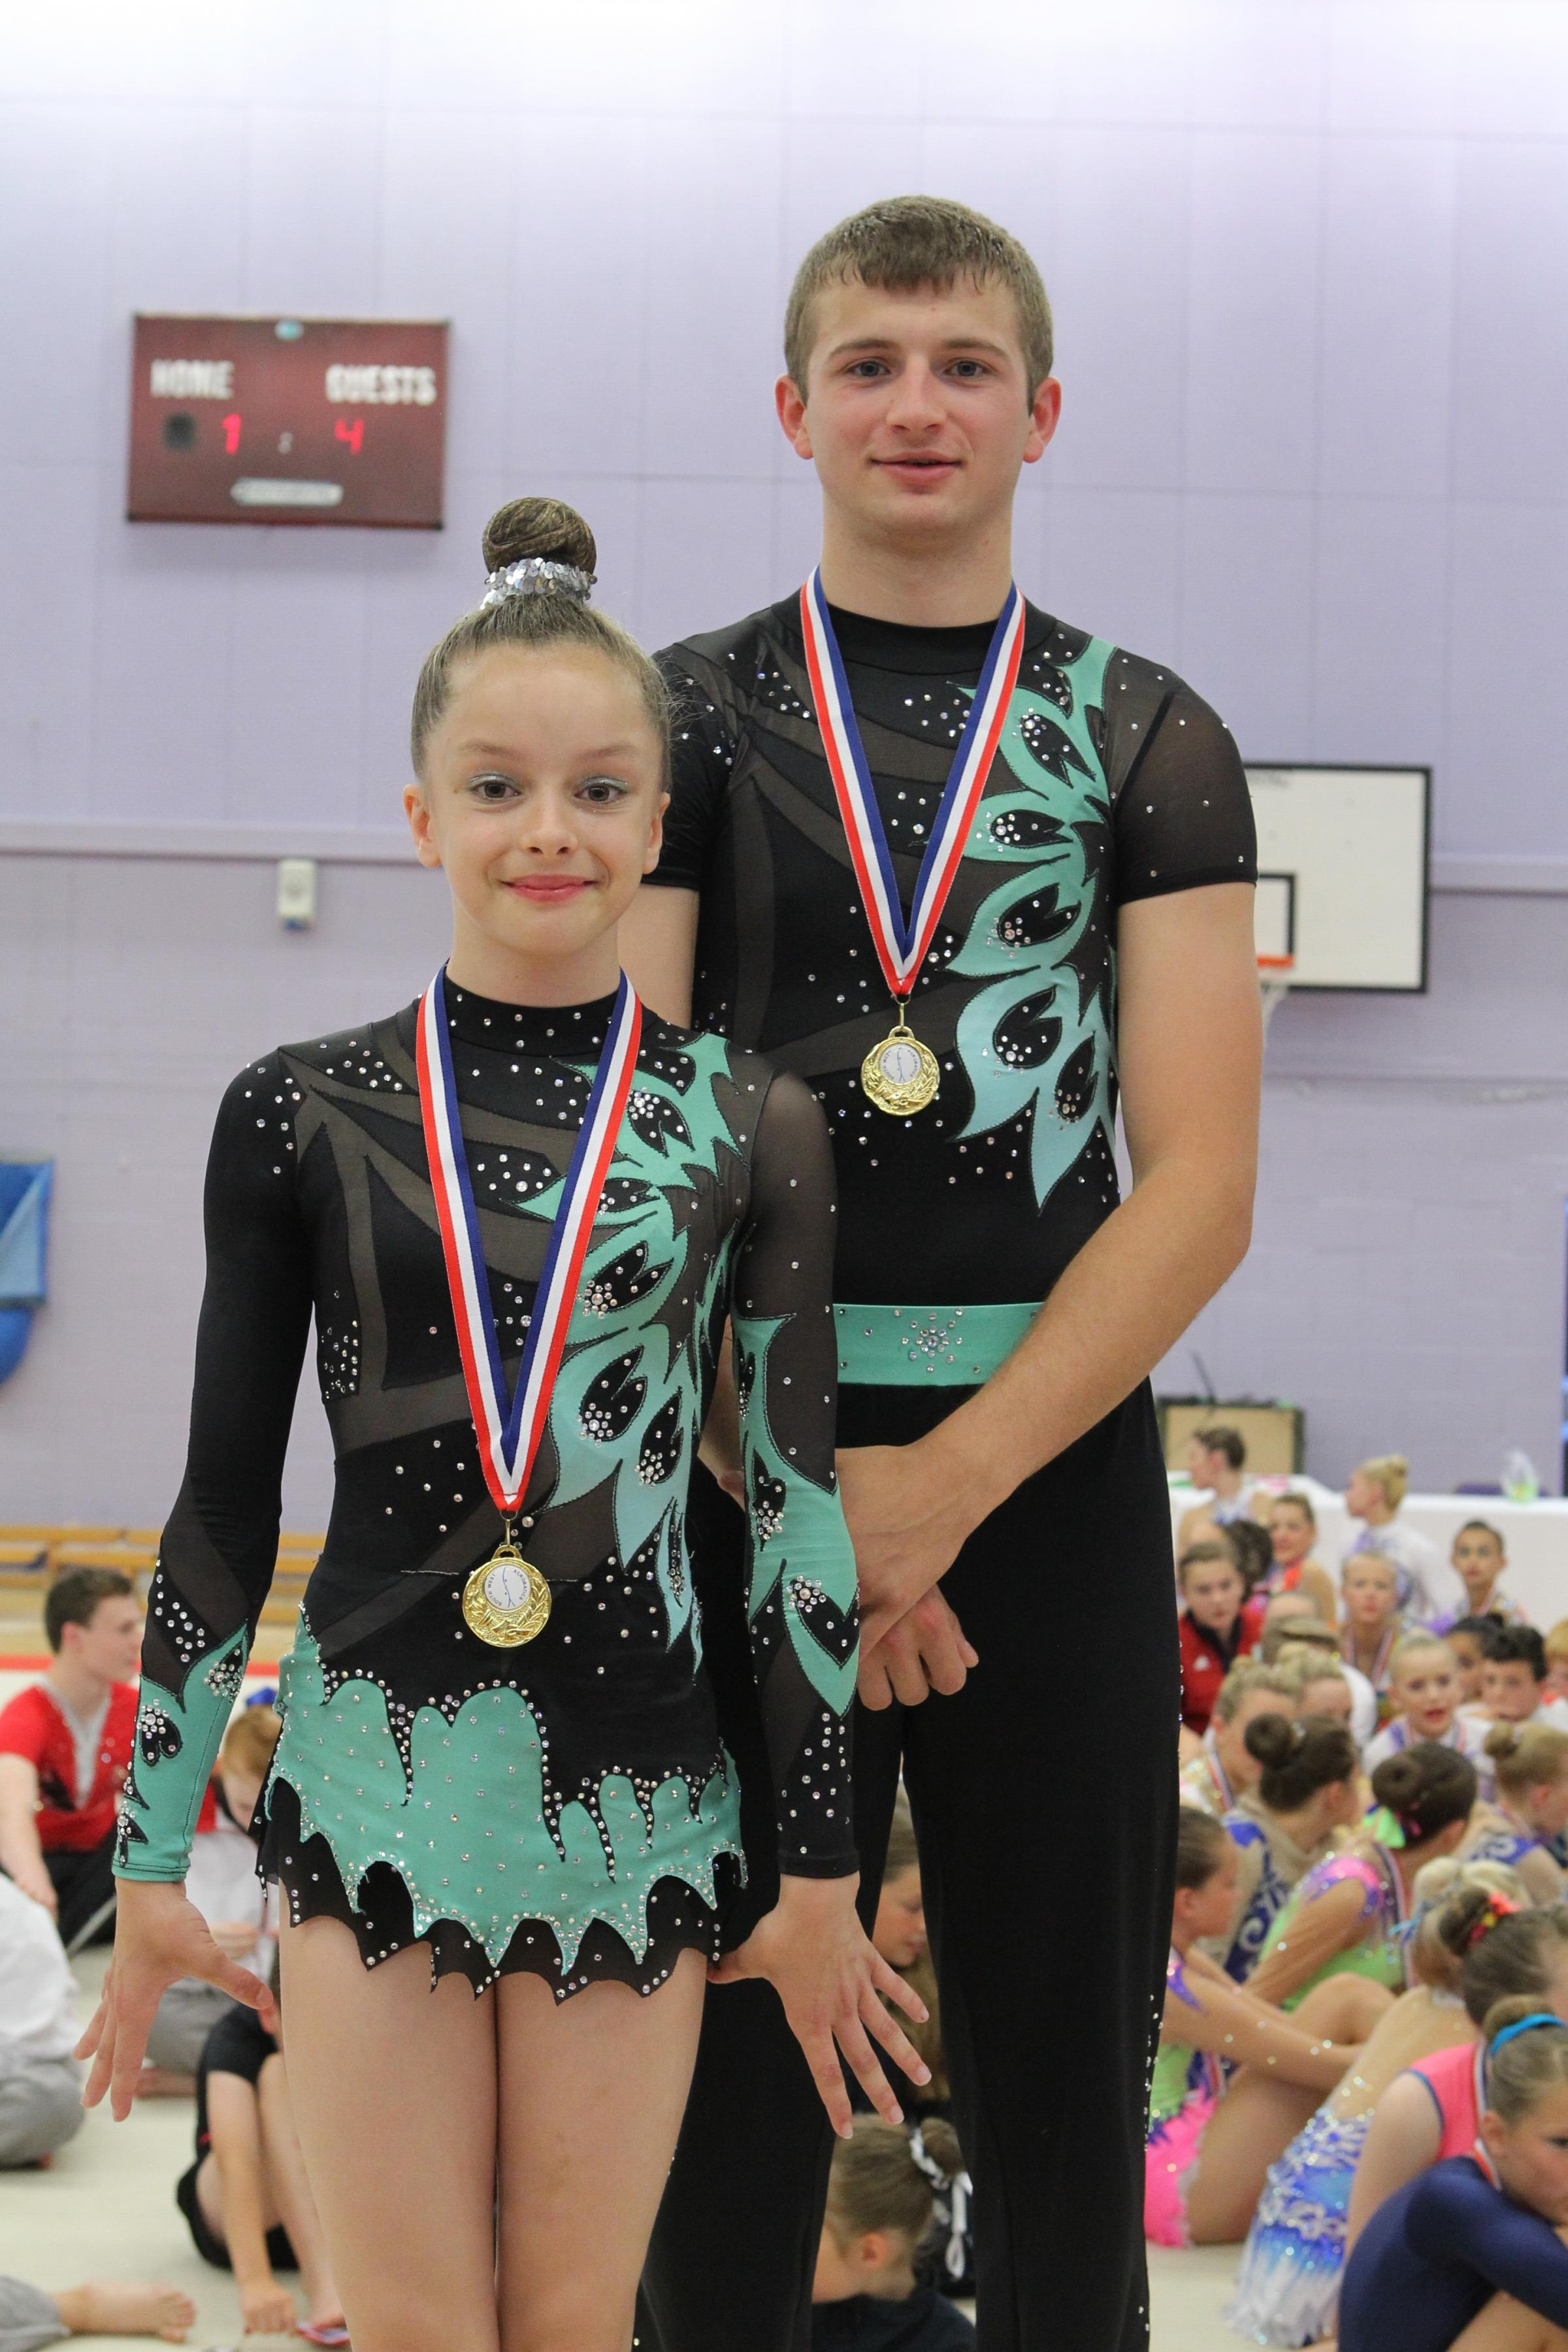 Gymnastics: Katie and James strike gold again